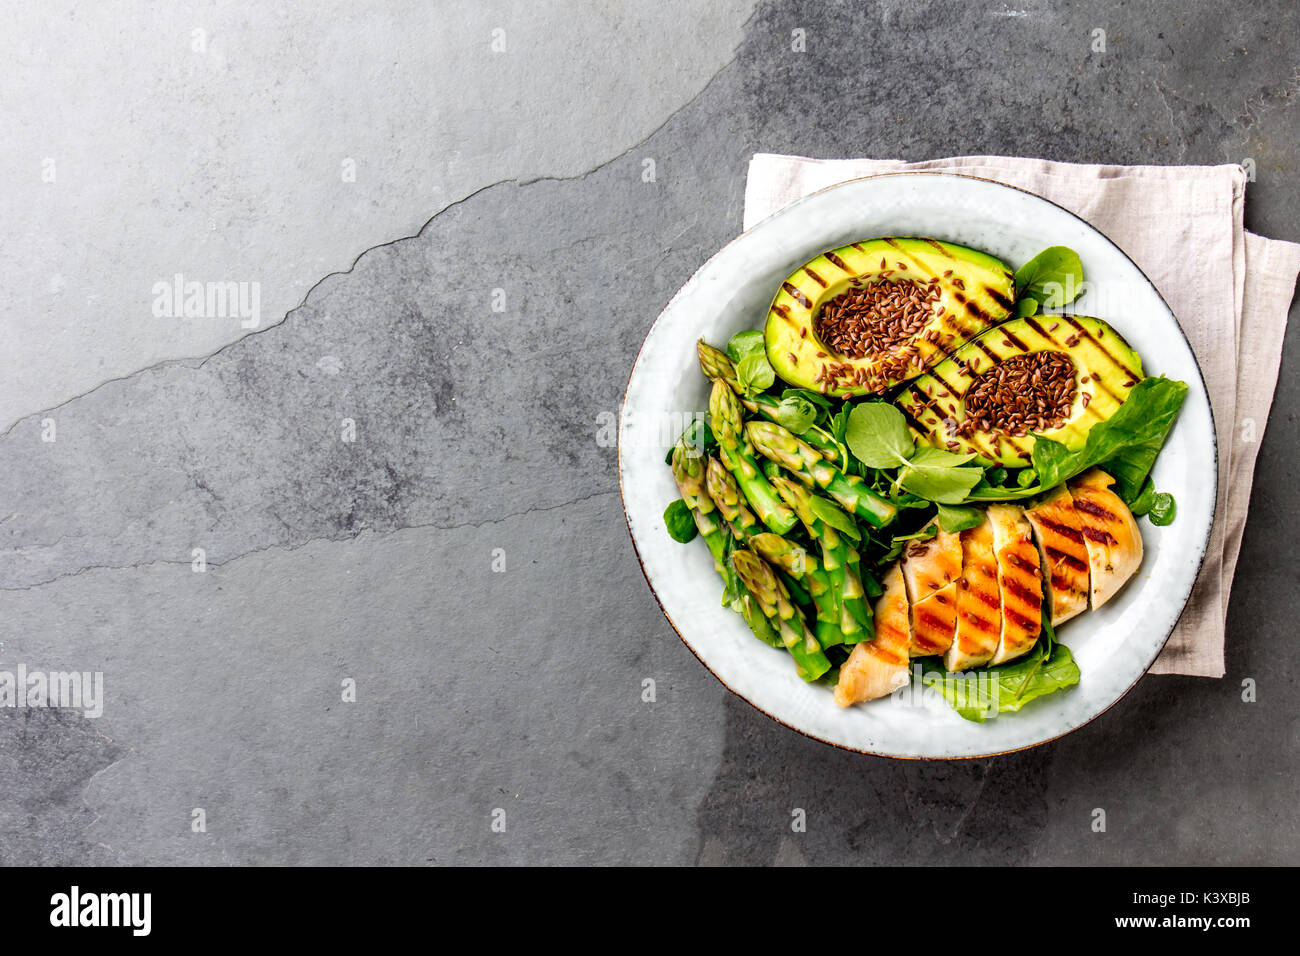 Healthy grilled chicken, grilled avocado and asparagus salad with linen seeds. Balanced lunch in bowl. Gray slate background. Top view. - Stock Image